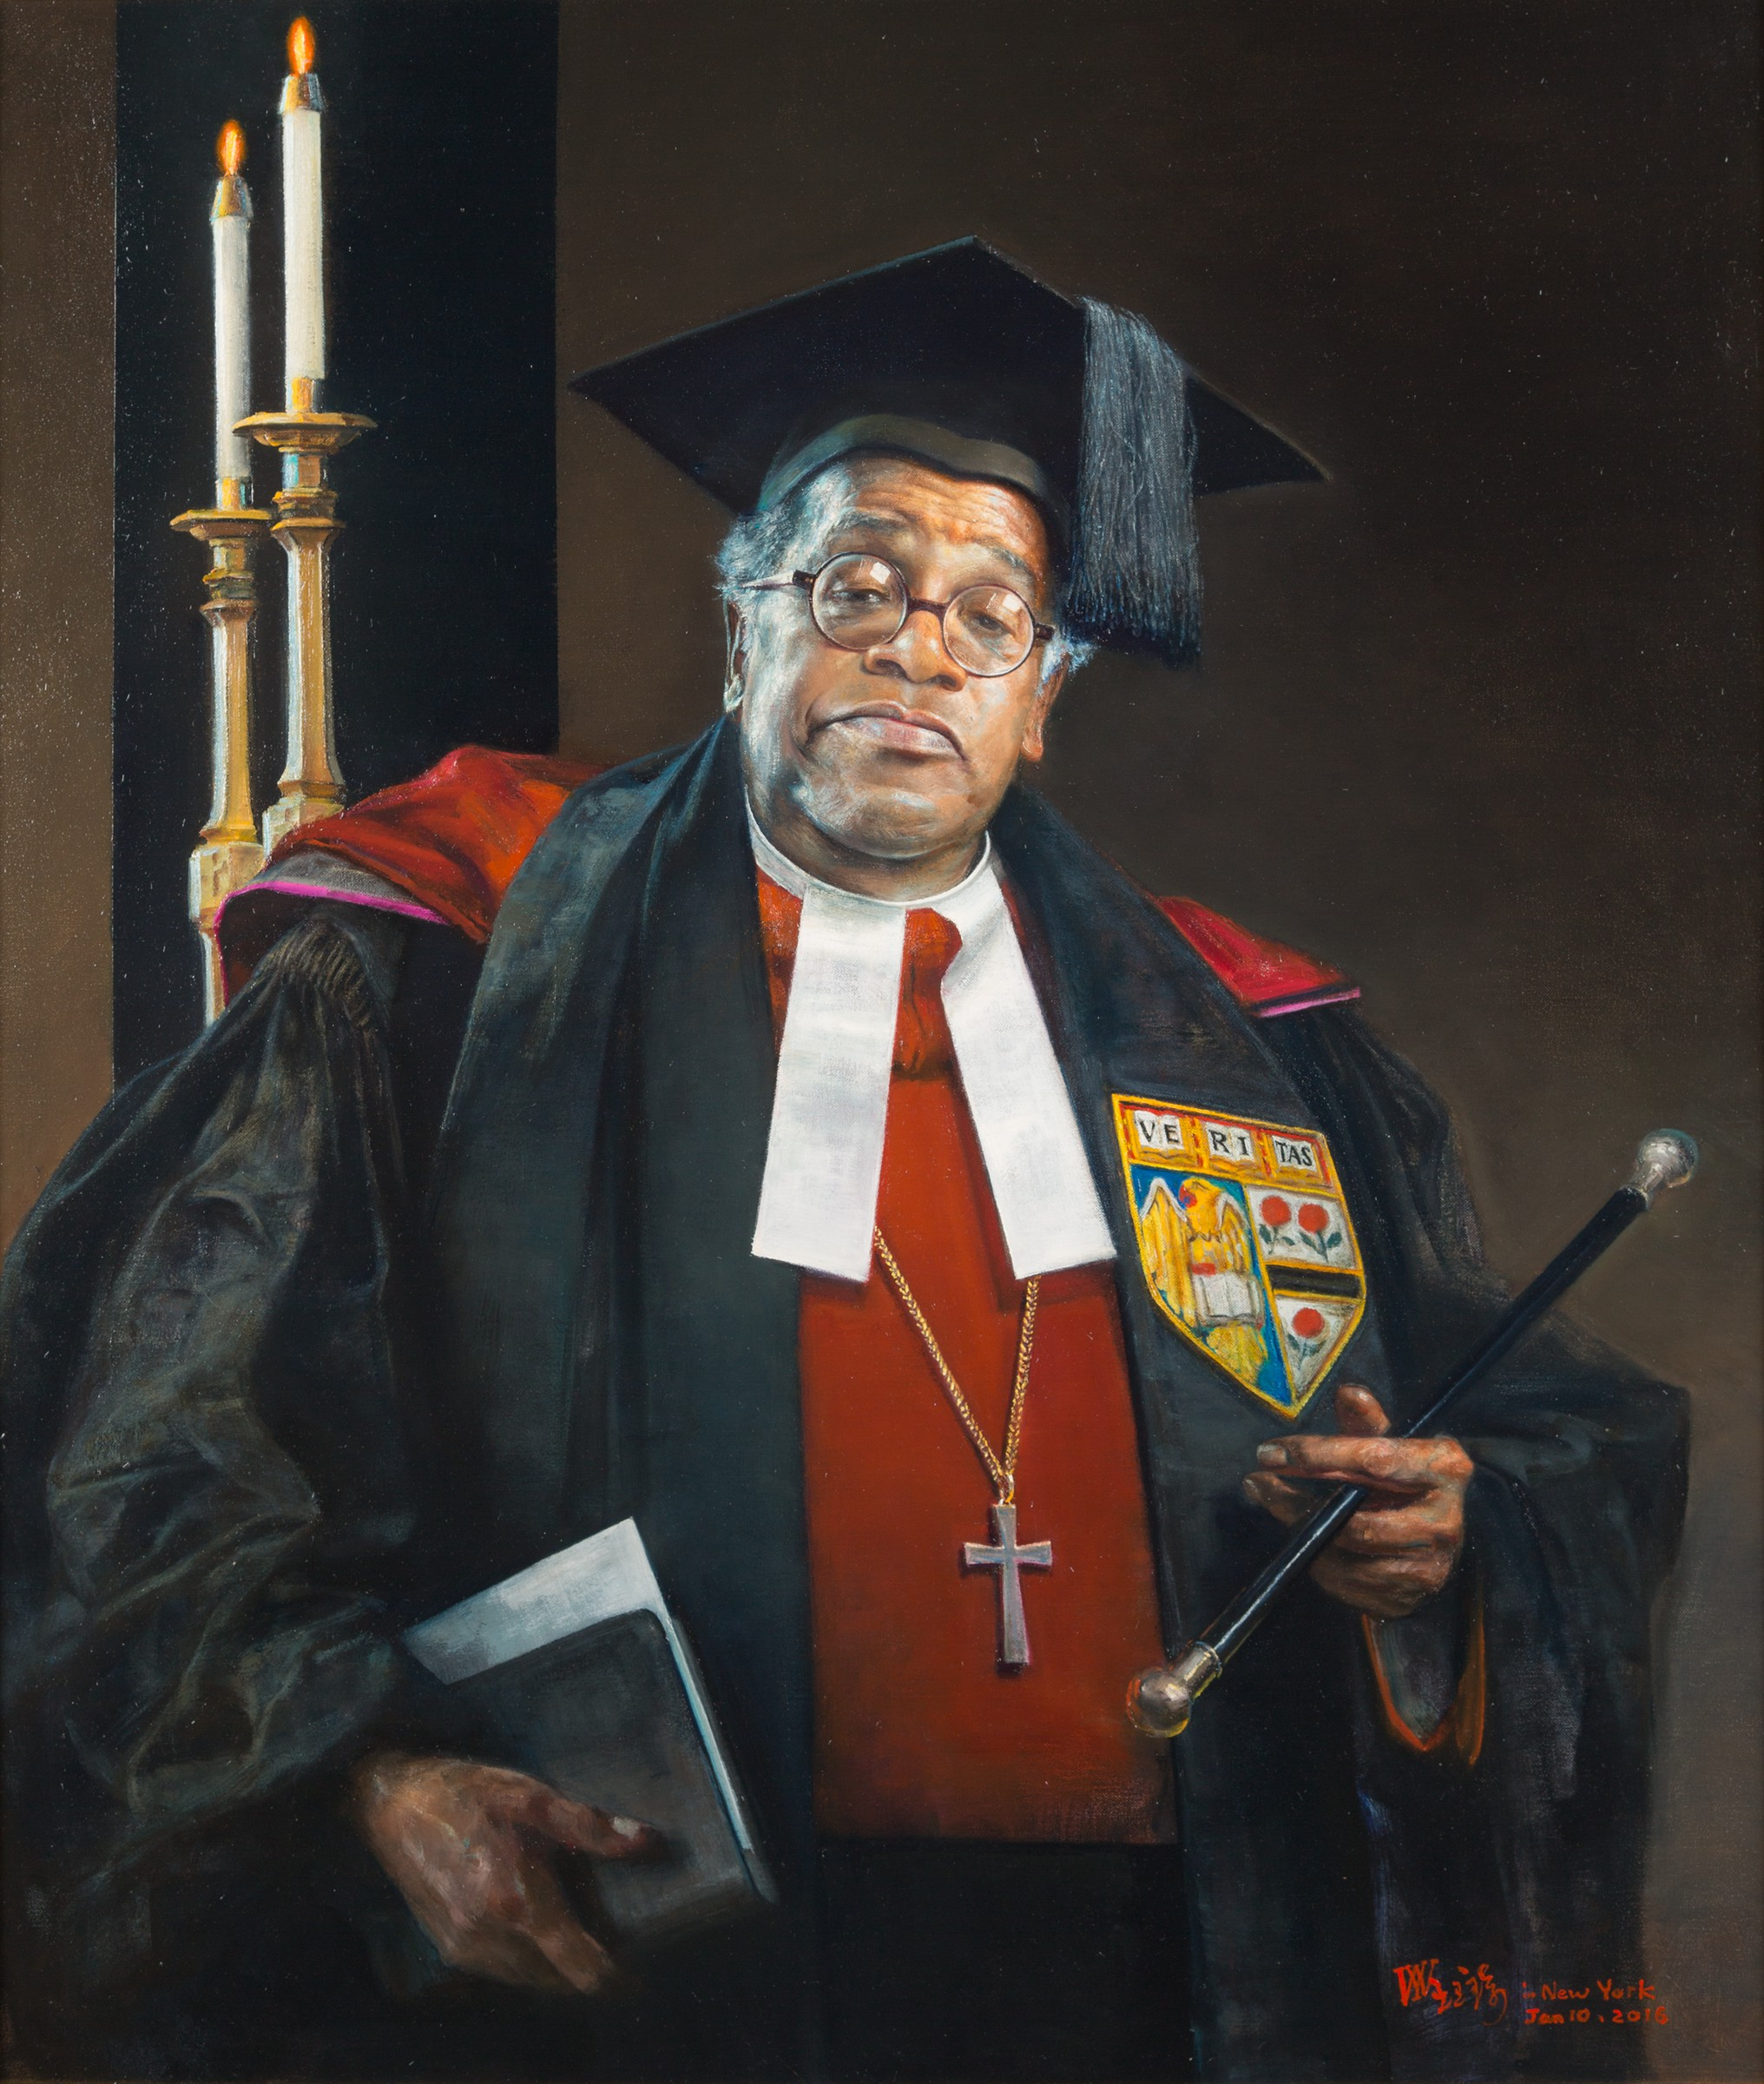 Yuqi Wang,  Peter Gomes  (2015). Oil on canvas, 101.6 x 86.4 cm. Harvard University Portrait Collection.